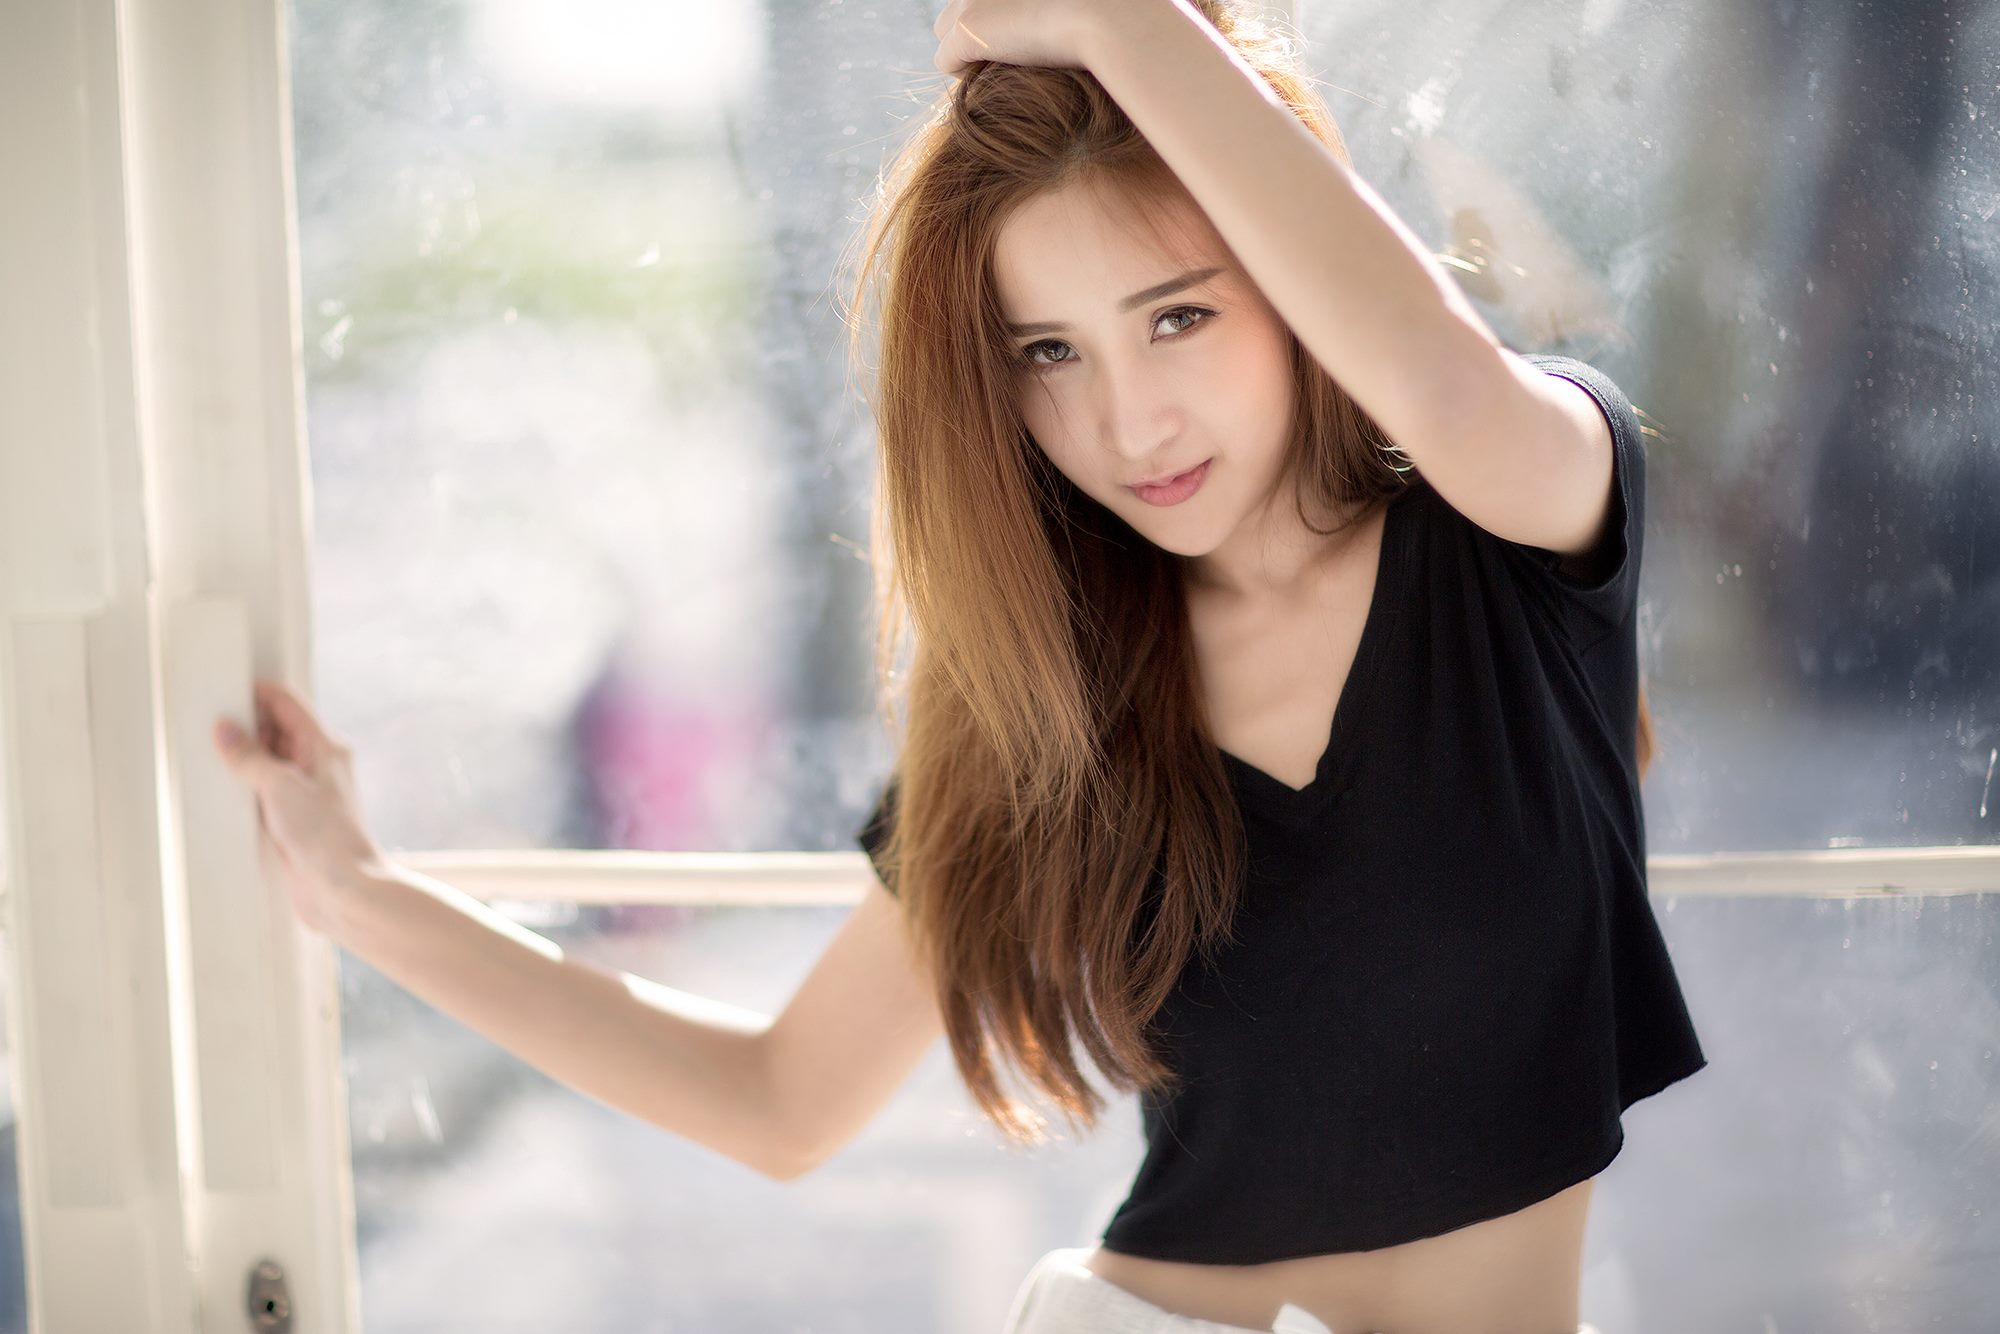 Asian Girl Cute Hd Girls 4k Wallpapers Images Backgrounds Photos And Pictures